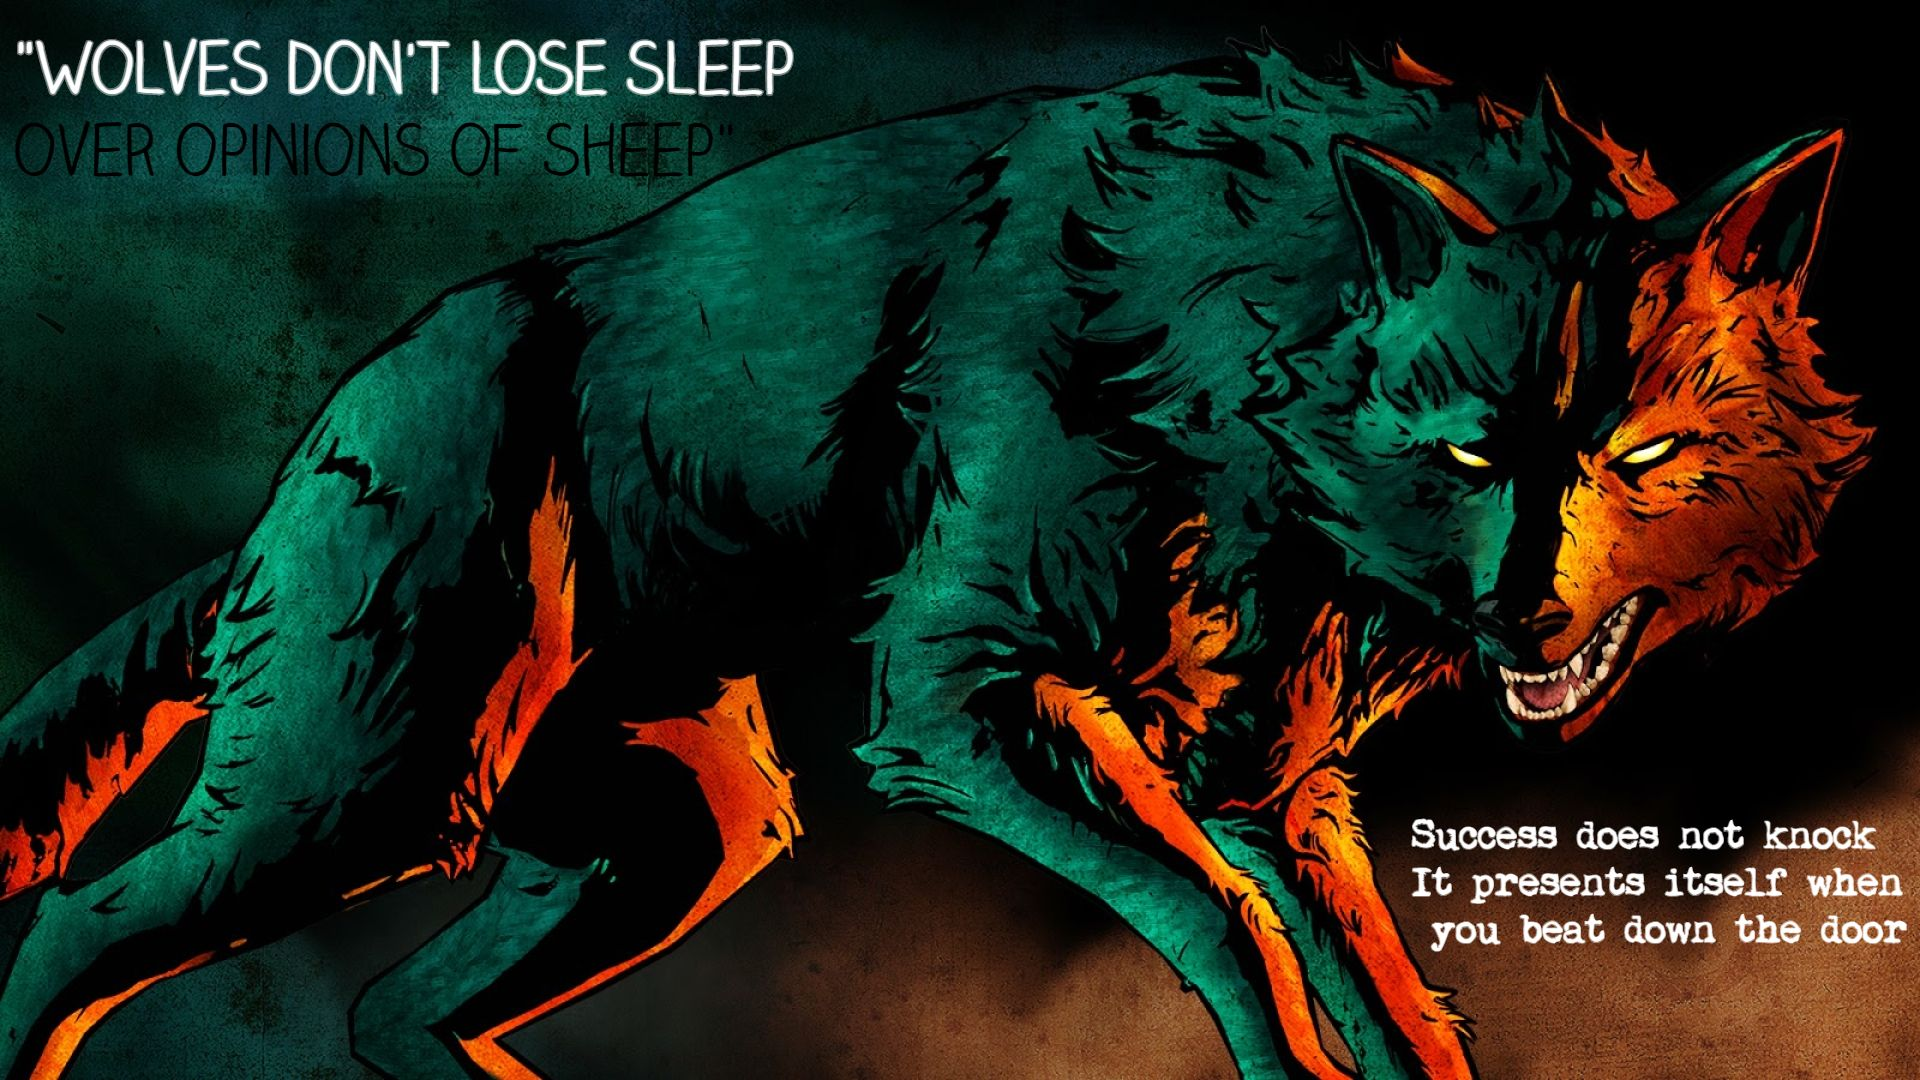 Wolf Painting With Inspirational Quotes 1920 1080 The Wolf Among Us Wolf Wolf Painting